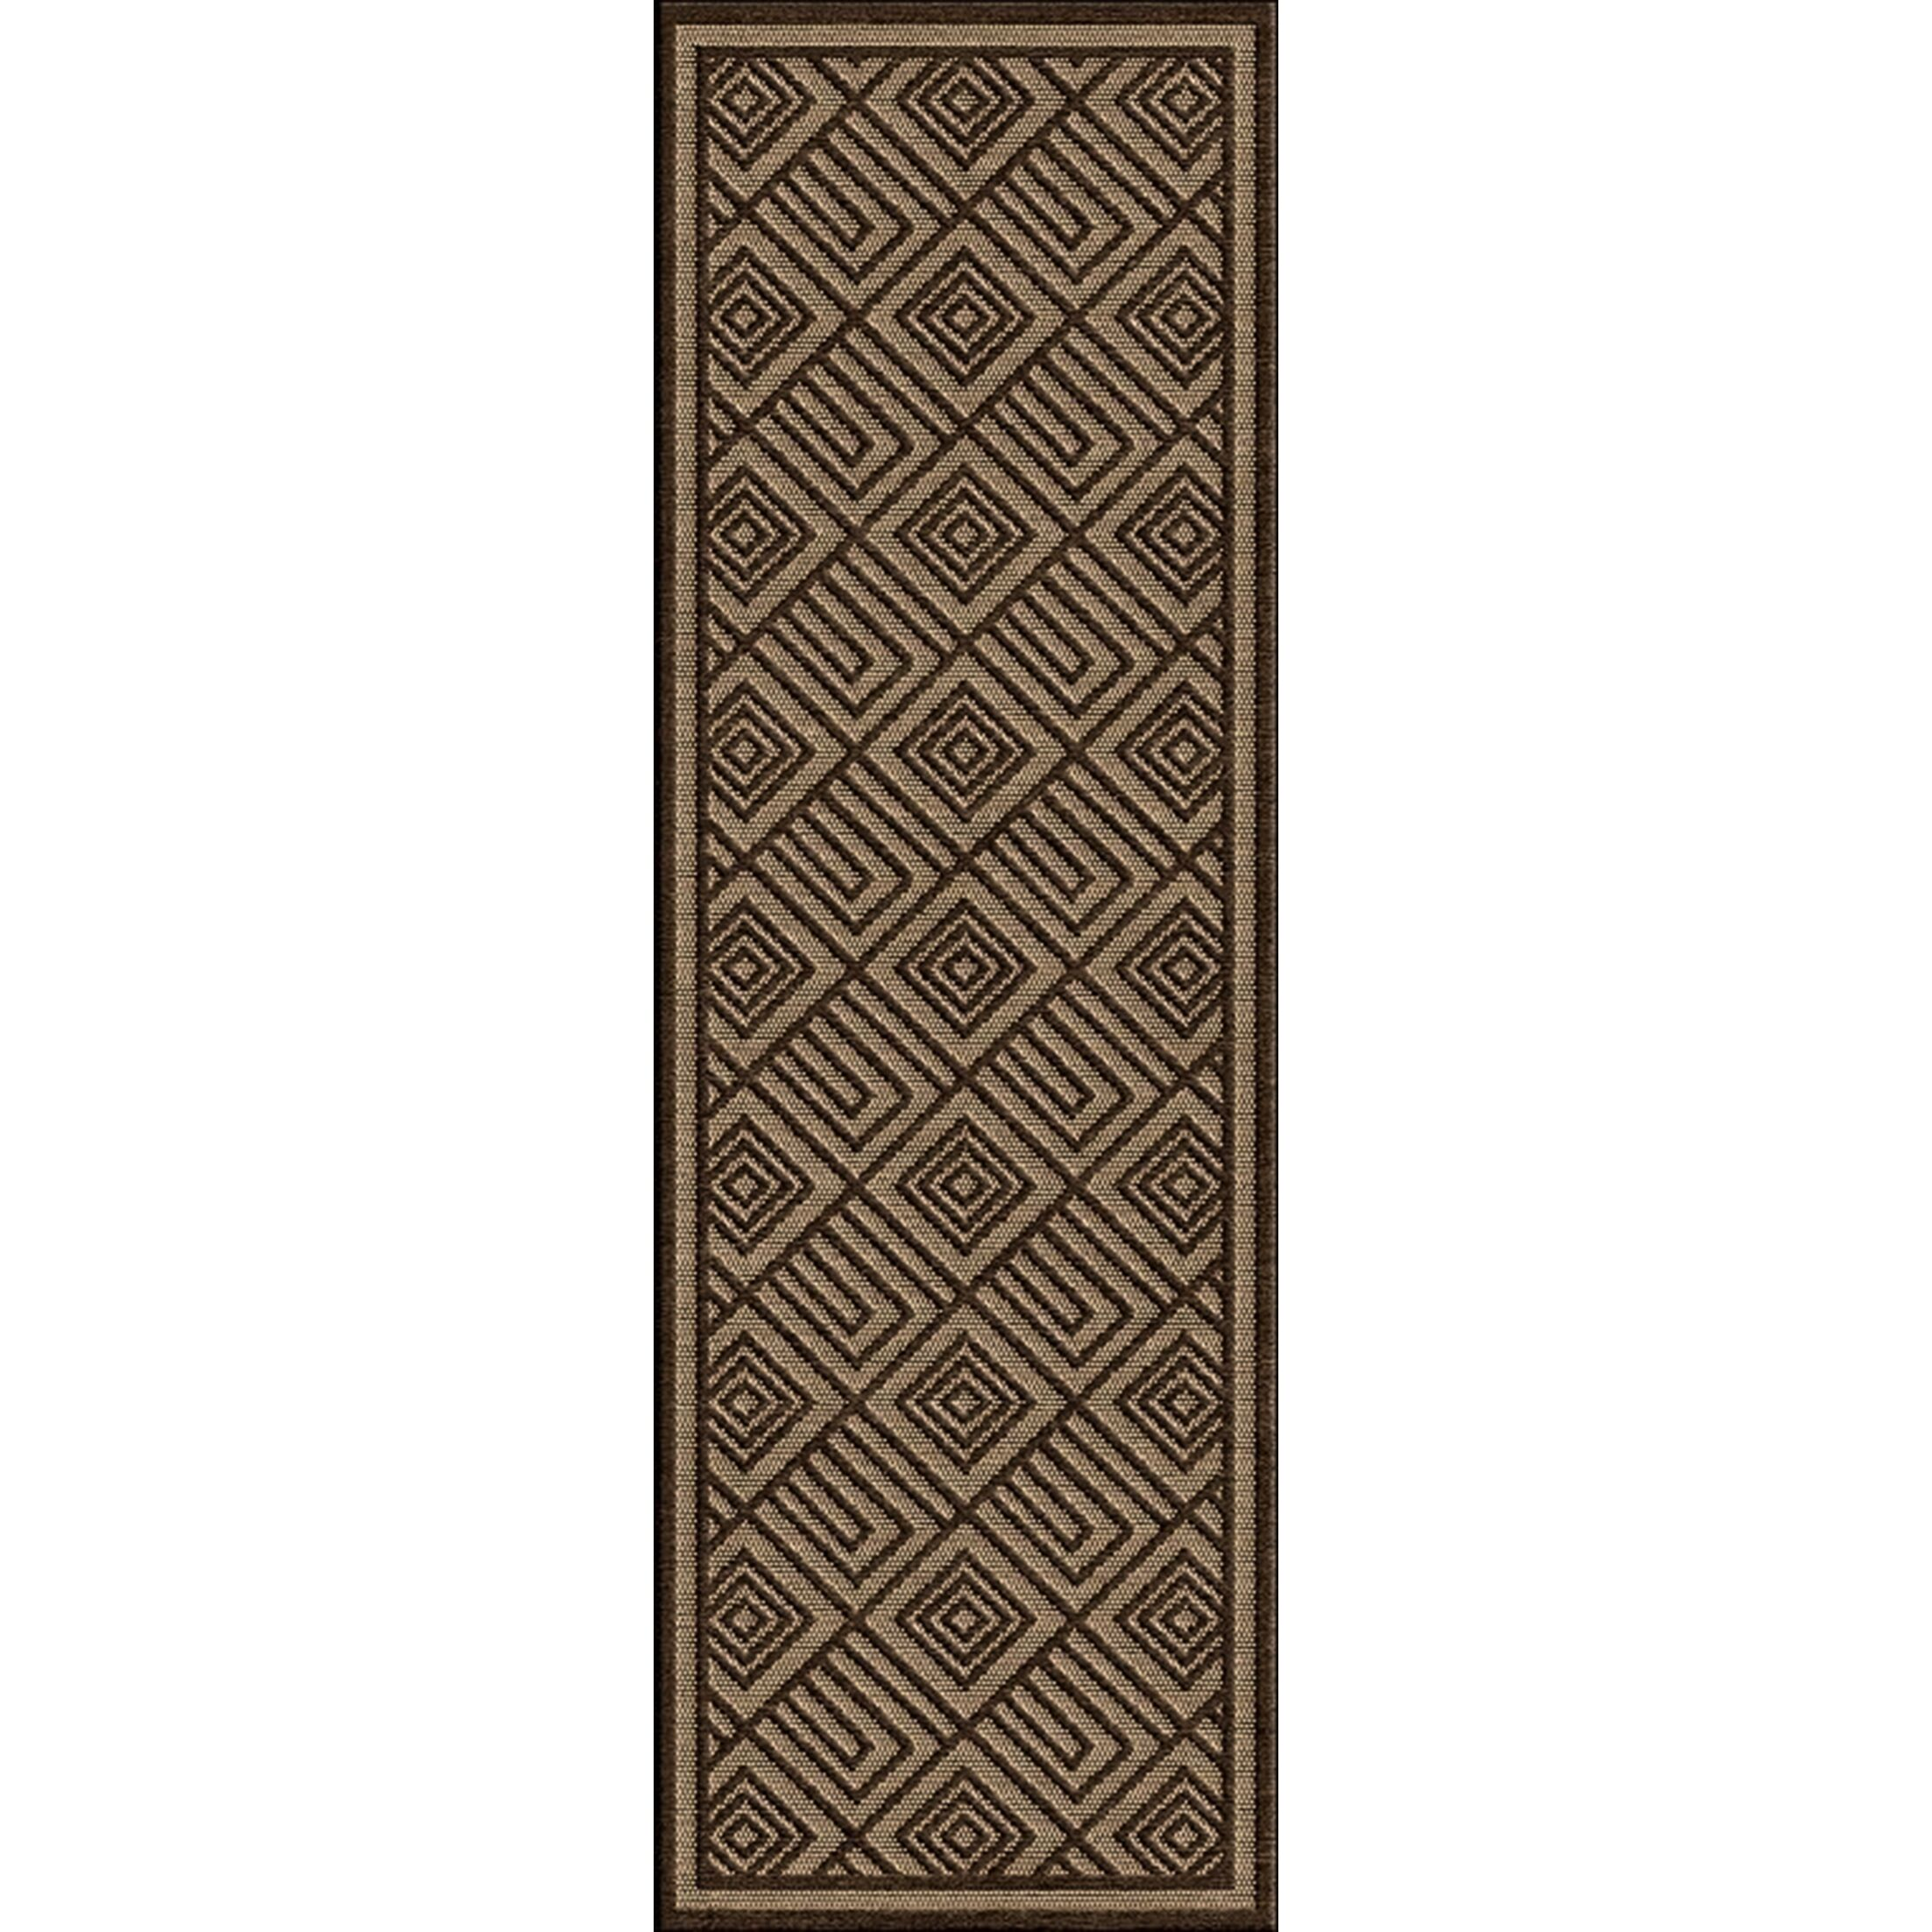 Vassar Dark Brown/Tan Indoor/Outdoor Area Rug Rug Size: Rectangle 7'10